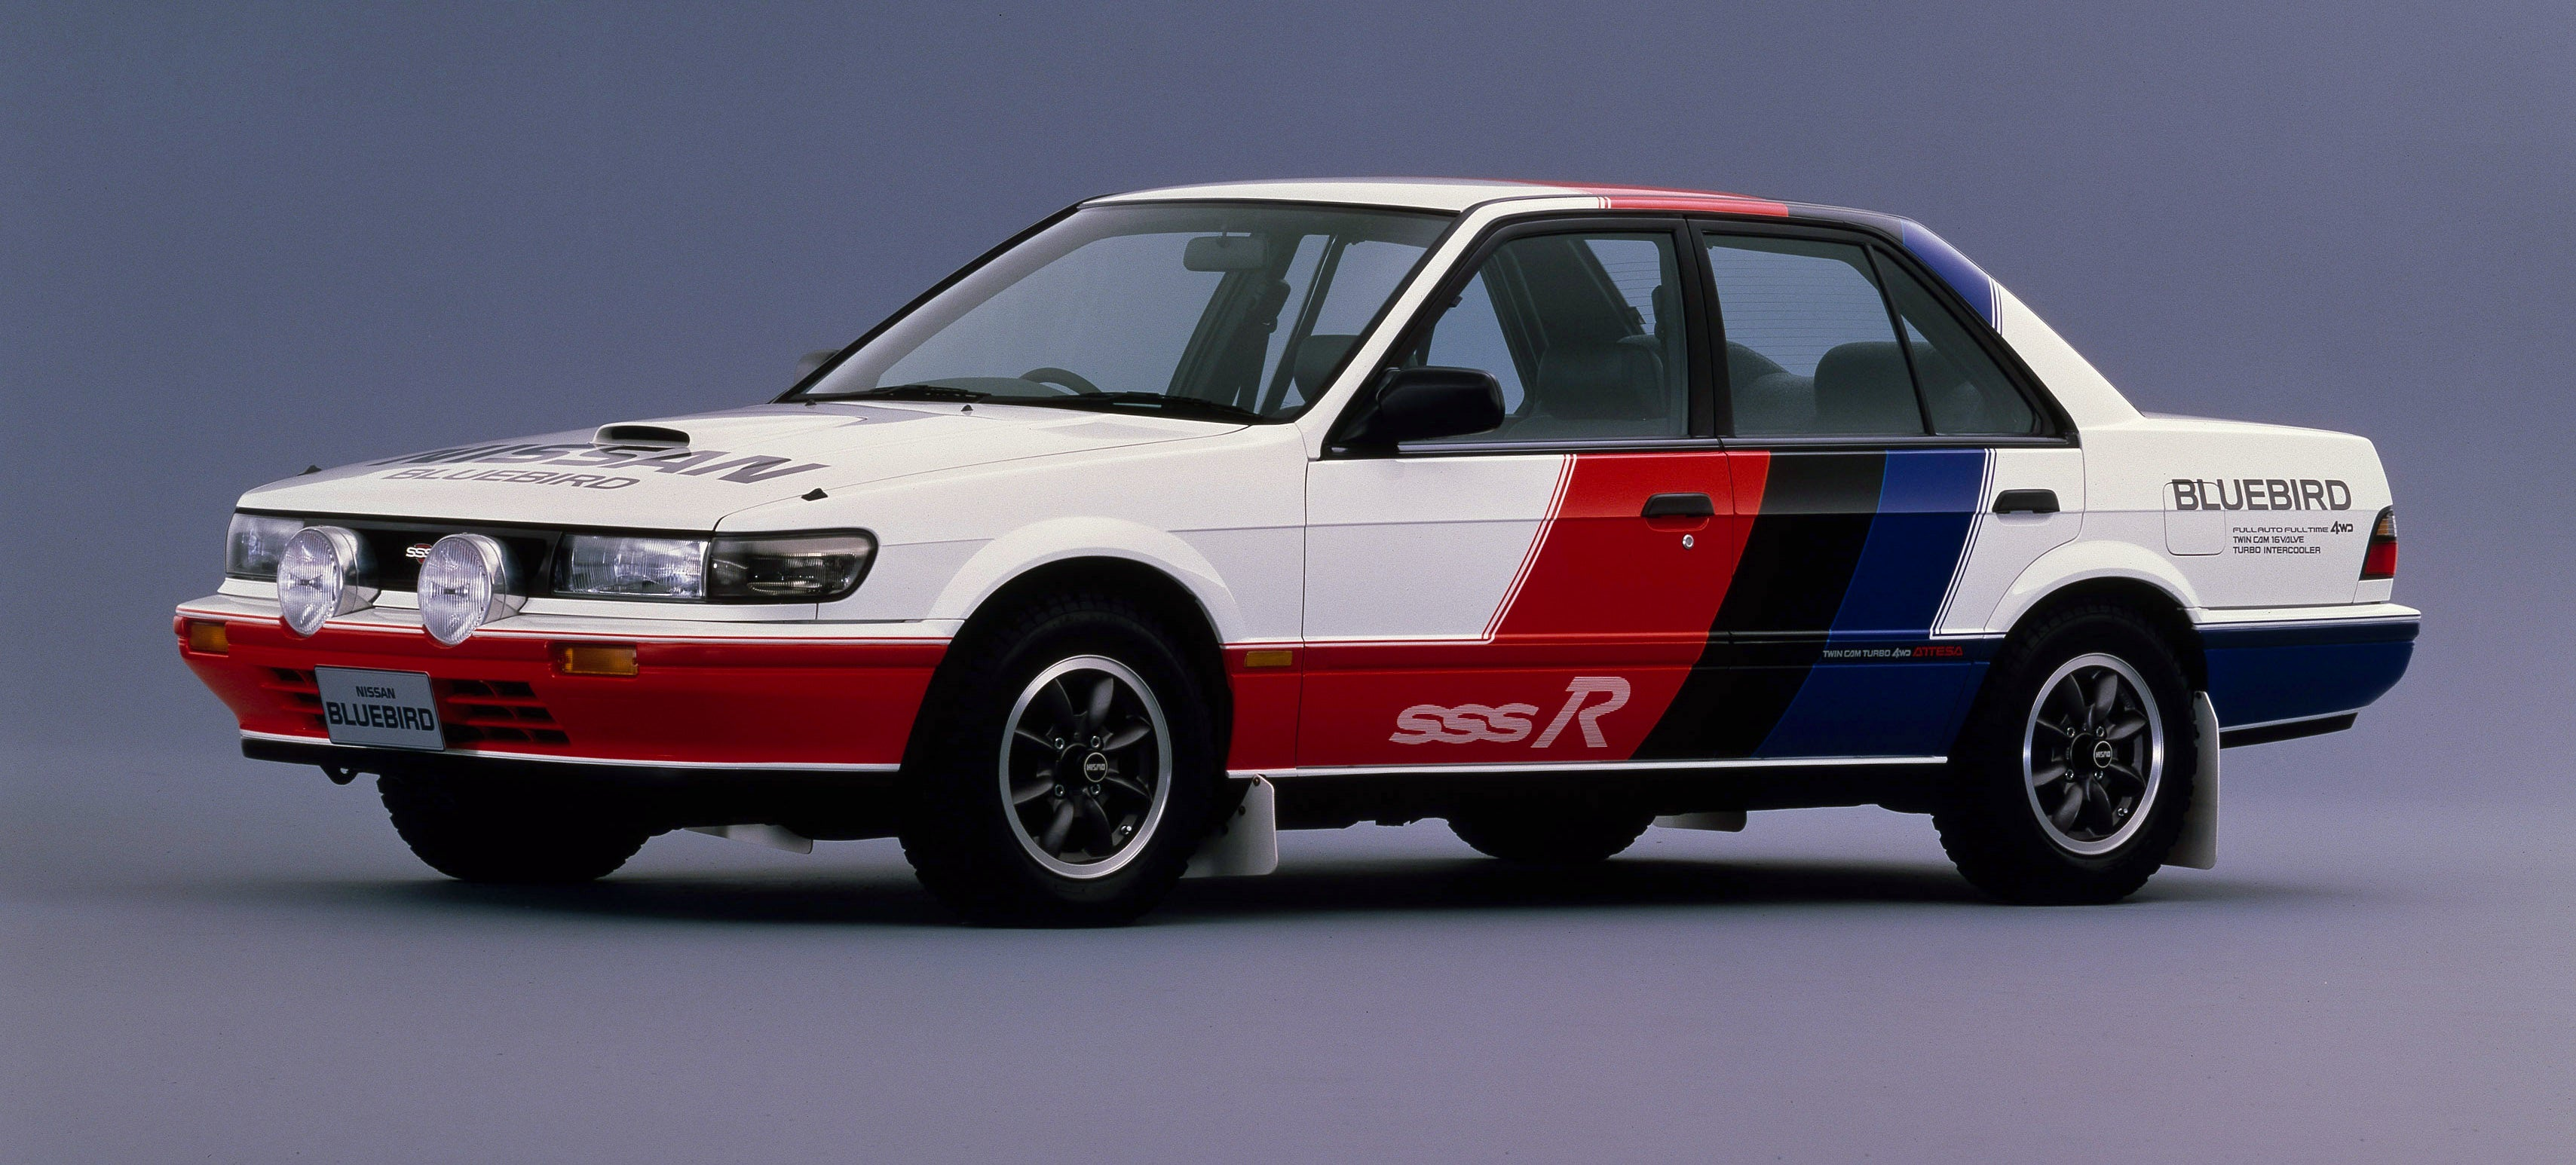 the most capable rally car ever sold from the factory rh jalopnik com Attesa Painting Attesa AWD